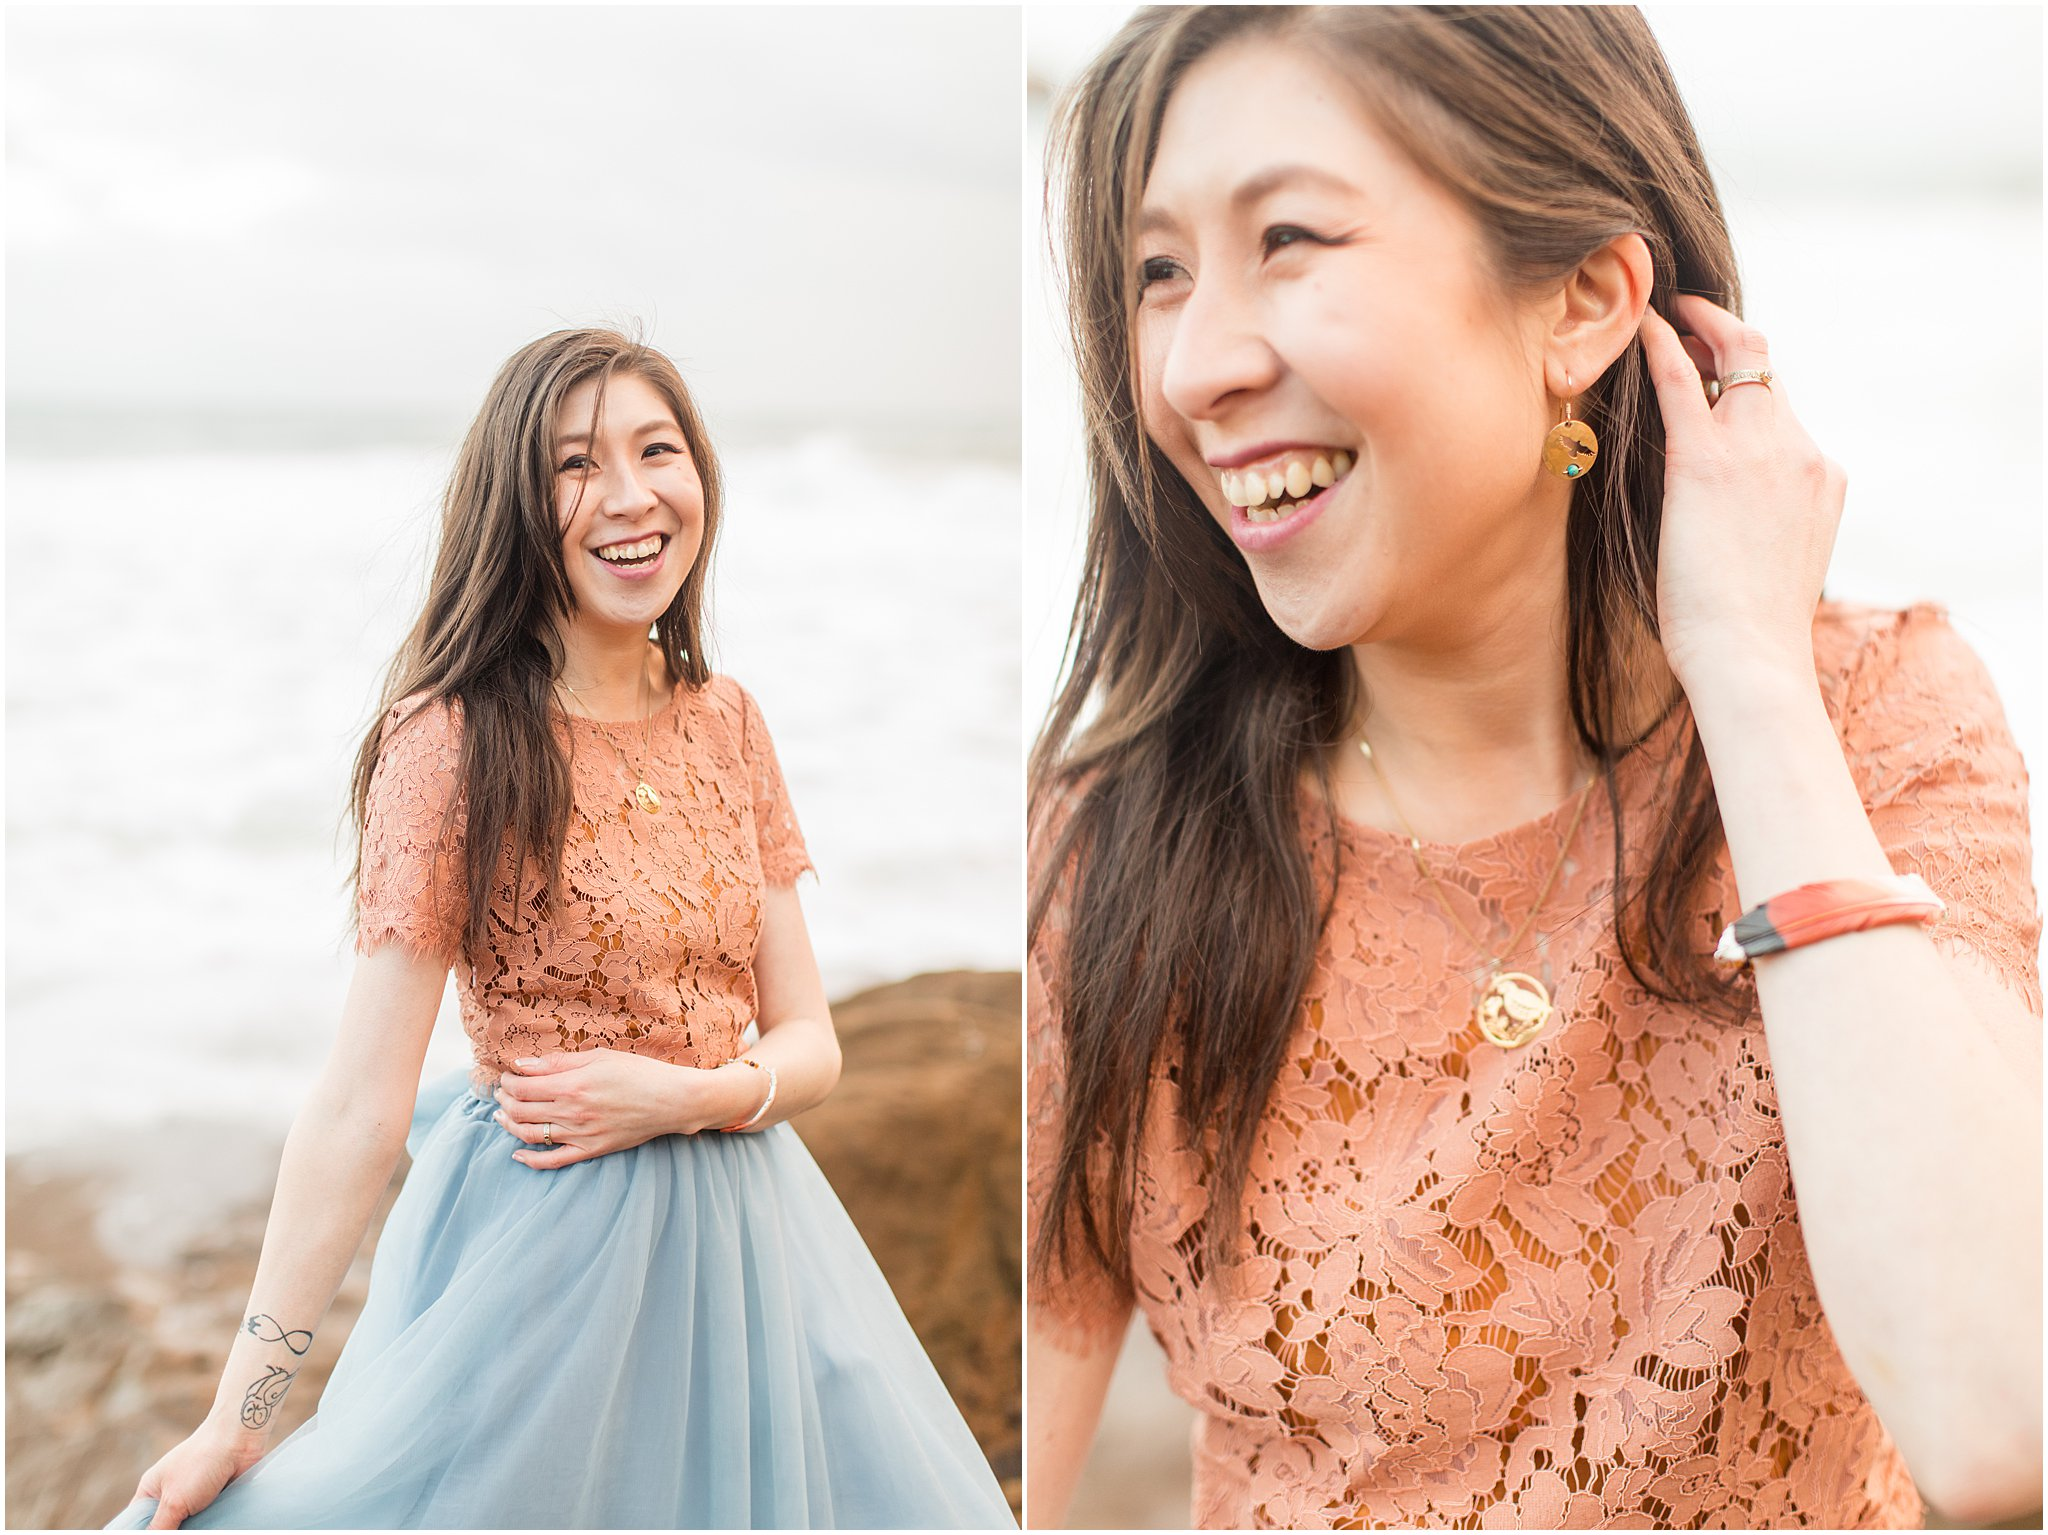 2019 marin headlands san francisco engagement session bay area wedding photographer_0022.jpg